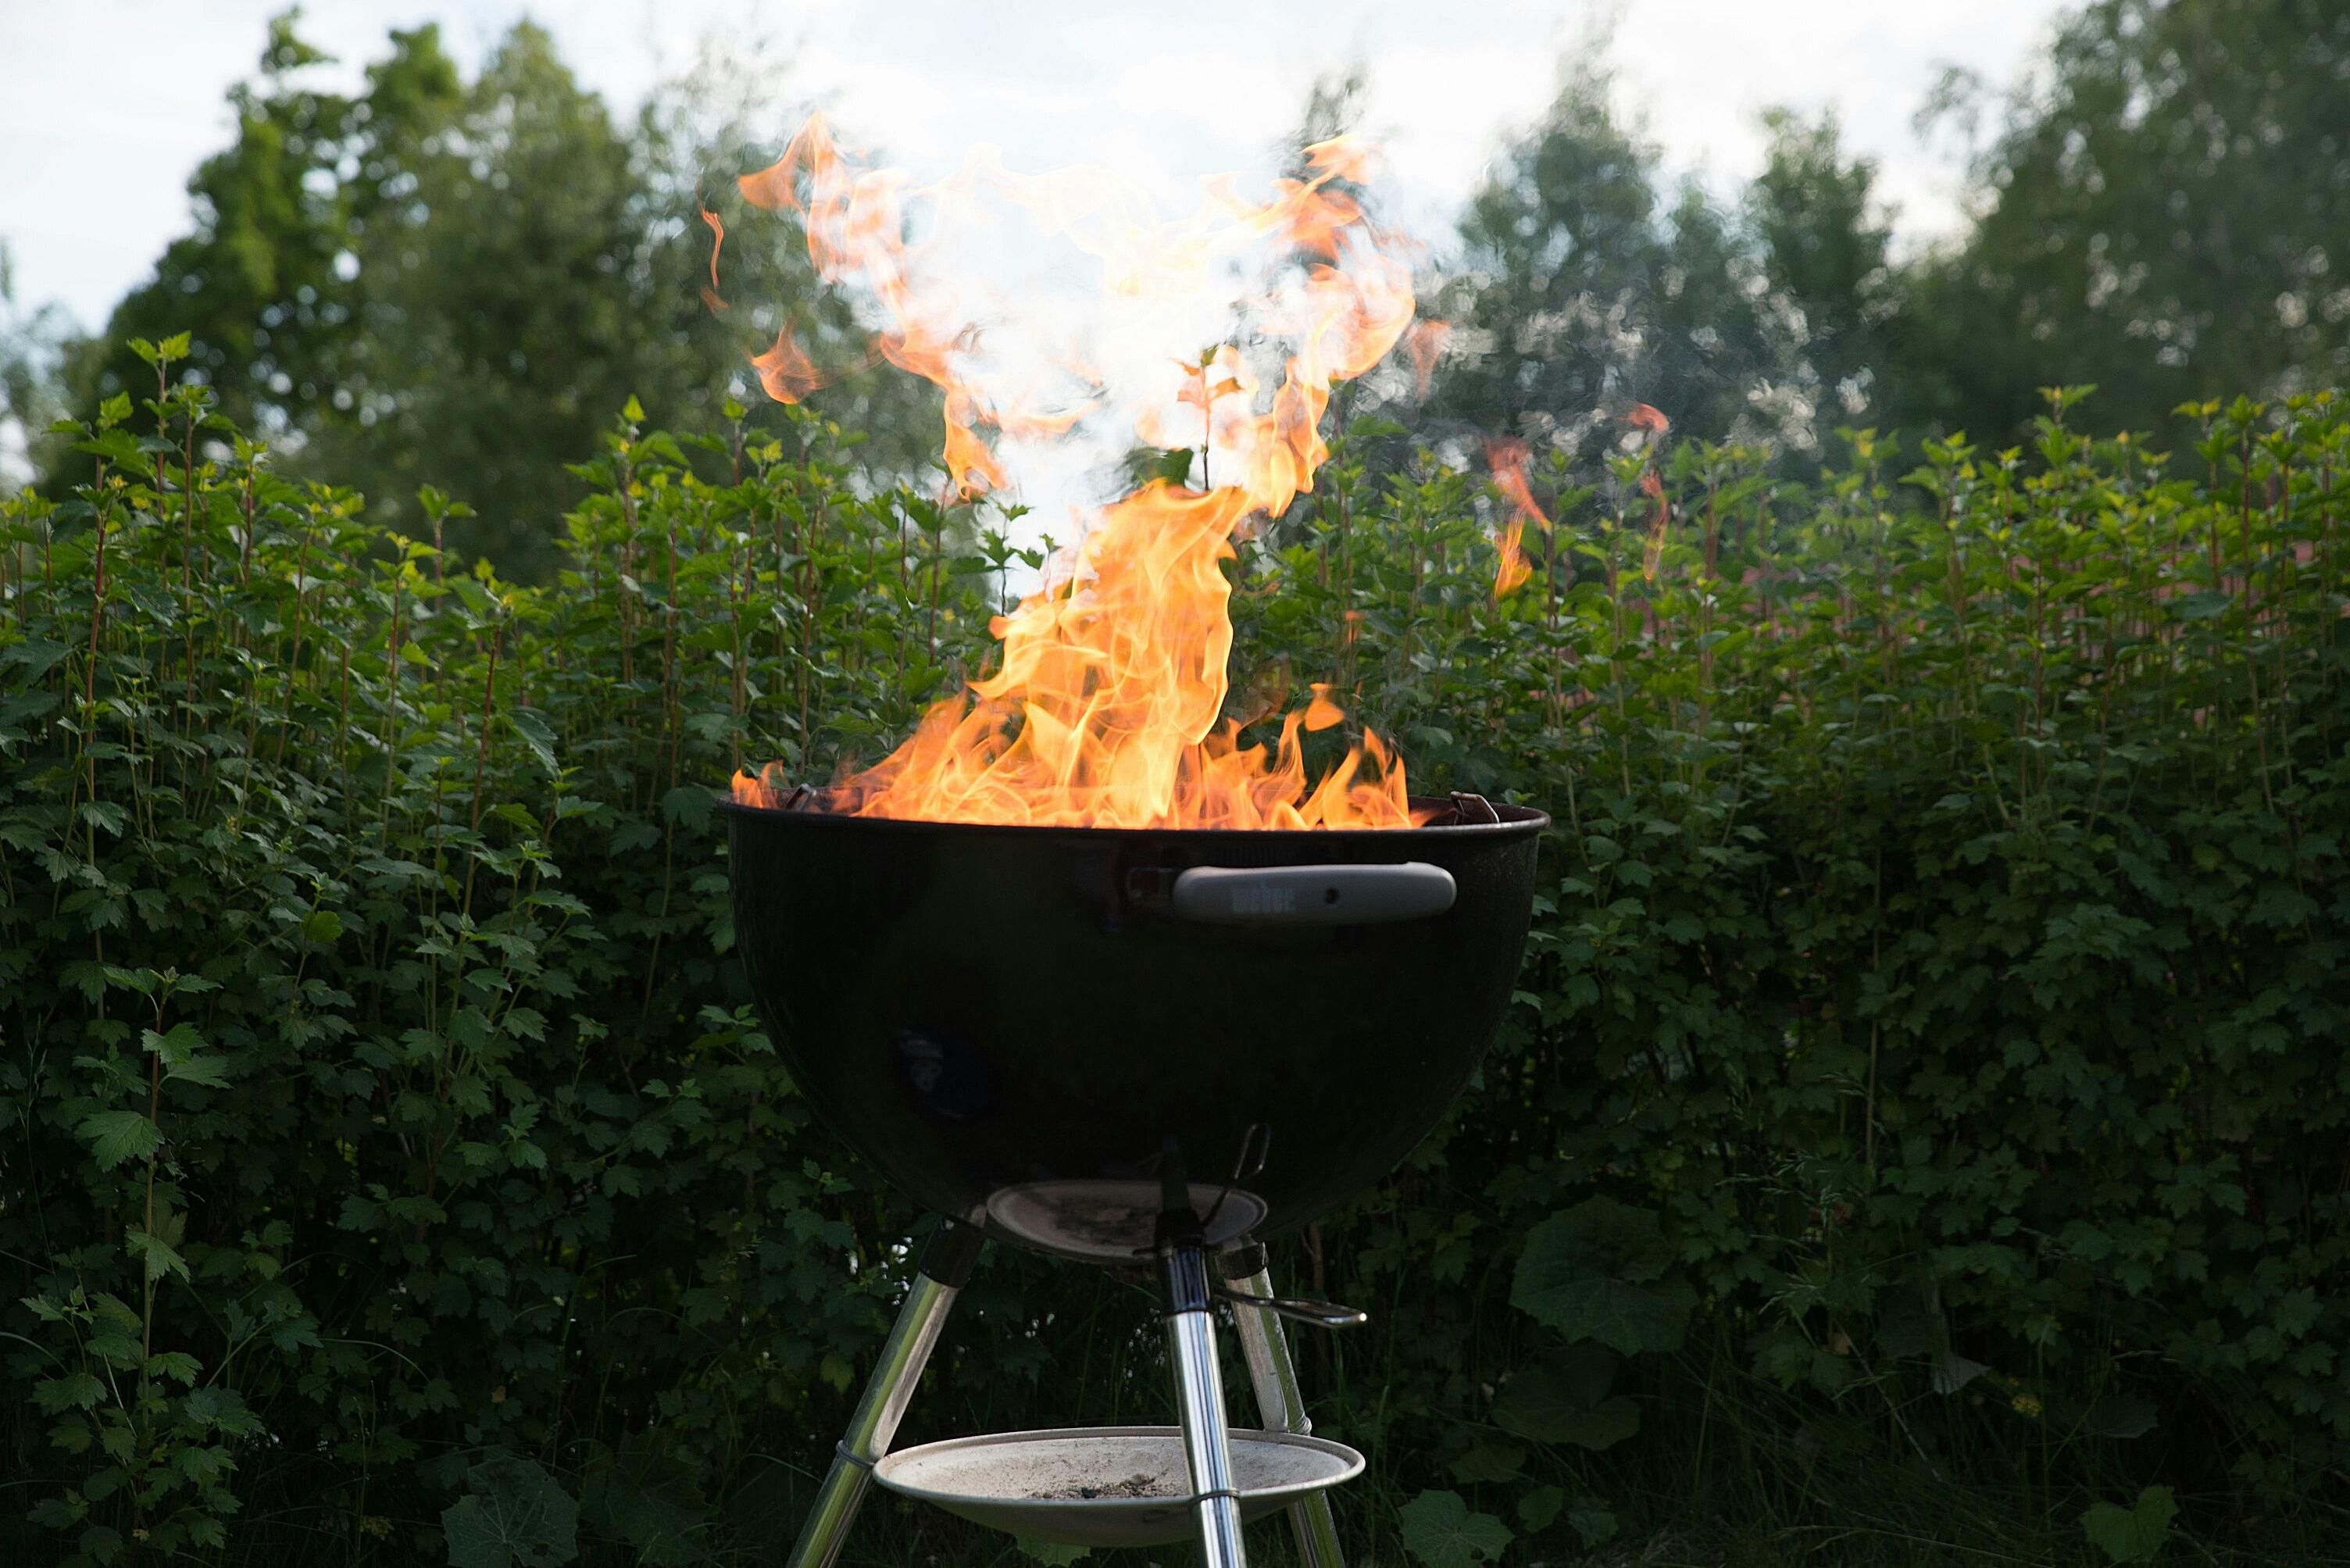 top 10 safety tips for barbecue and grilling